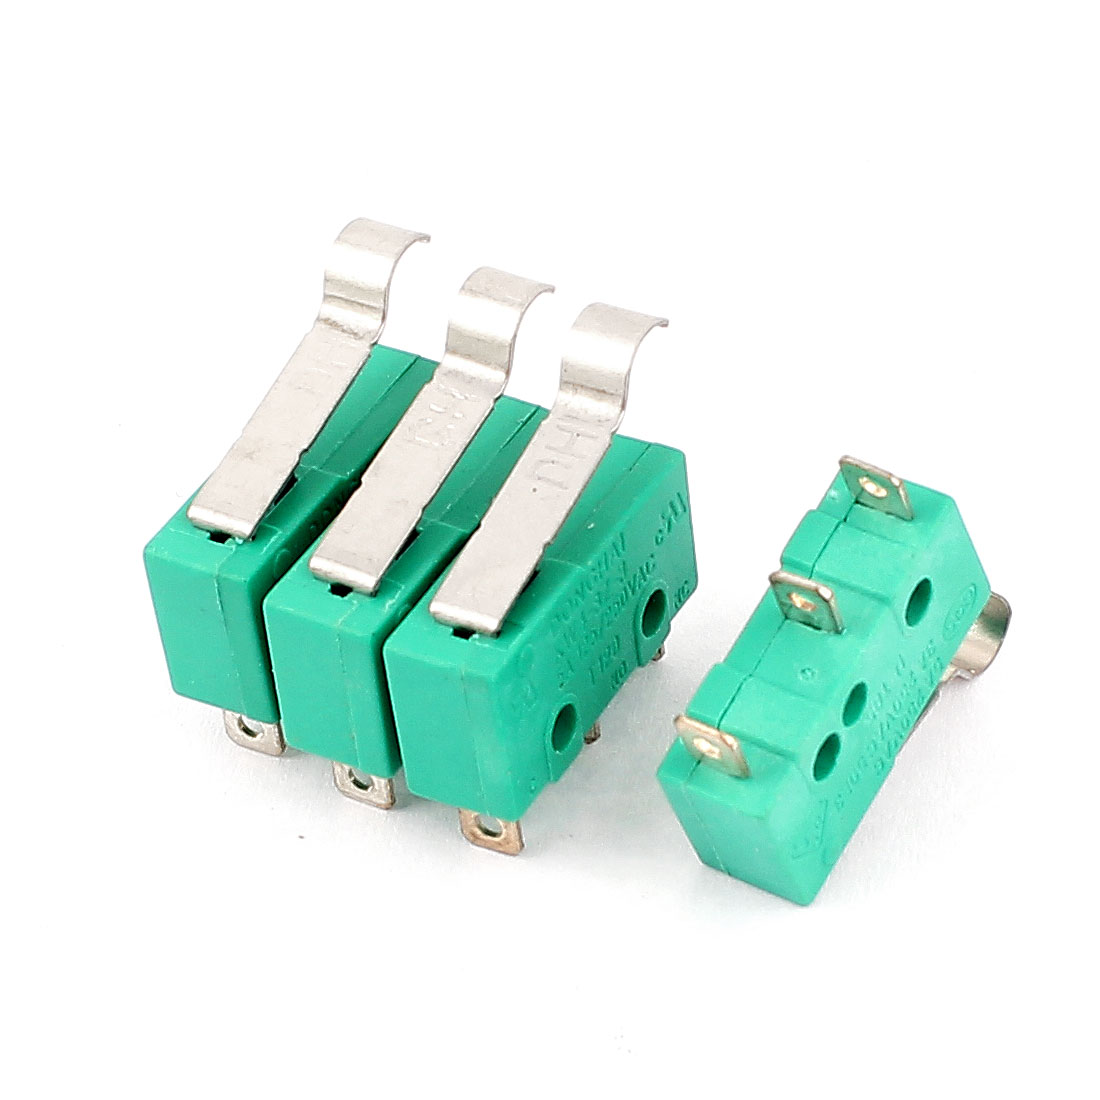 4 Pcs AC 250V 5A/3A SPDT Hinge Lever Type Momentary Micro Limit Switch